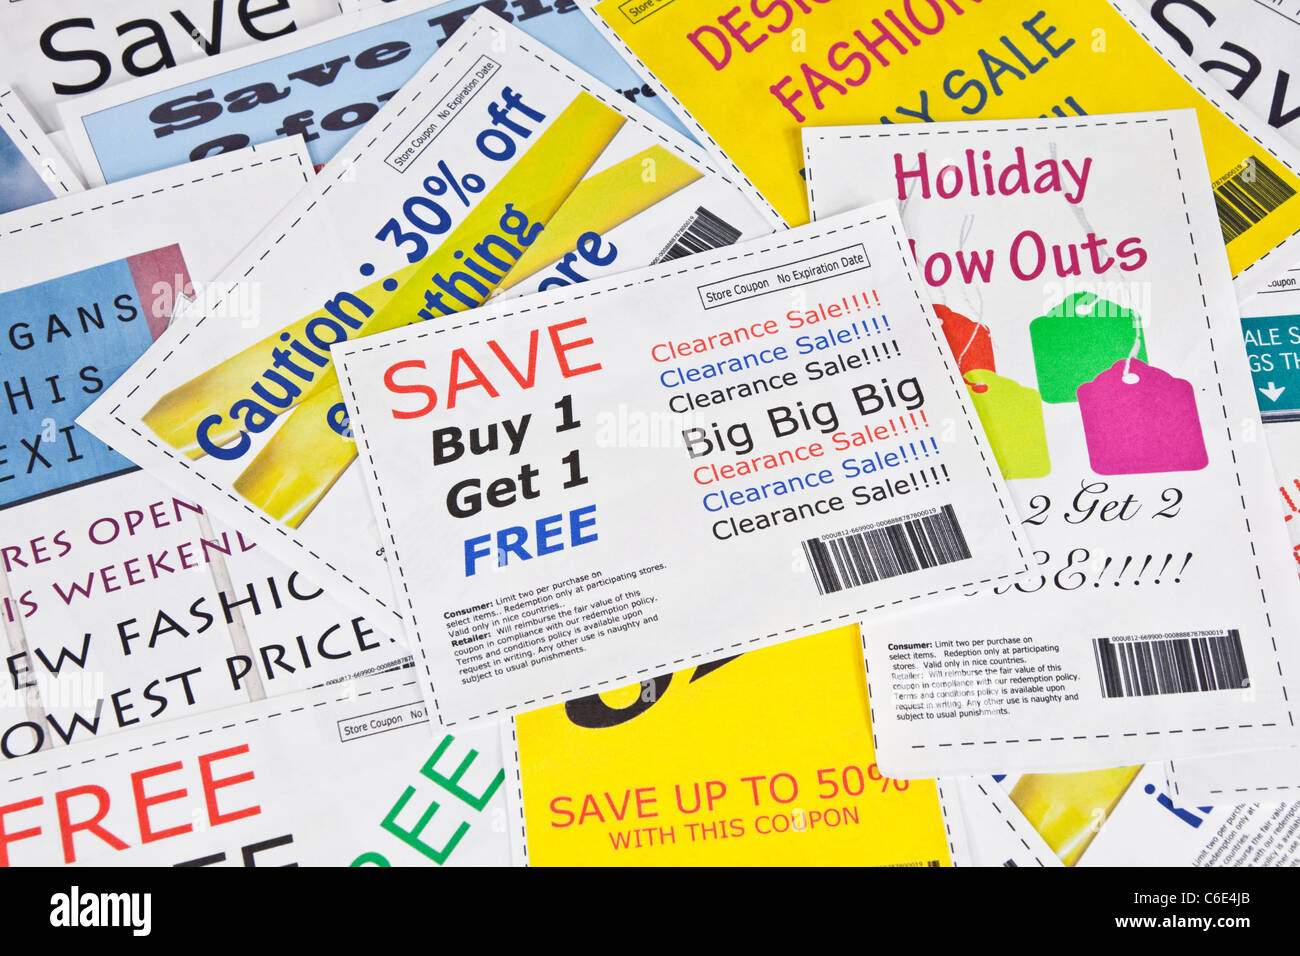 Completely fake fashion store coupons.  The photos within the coupons are the photographers work.  No real ads were - Stock Image